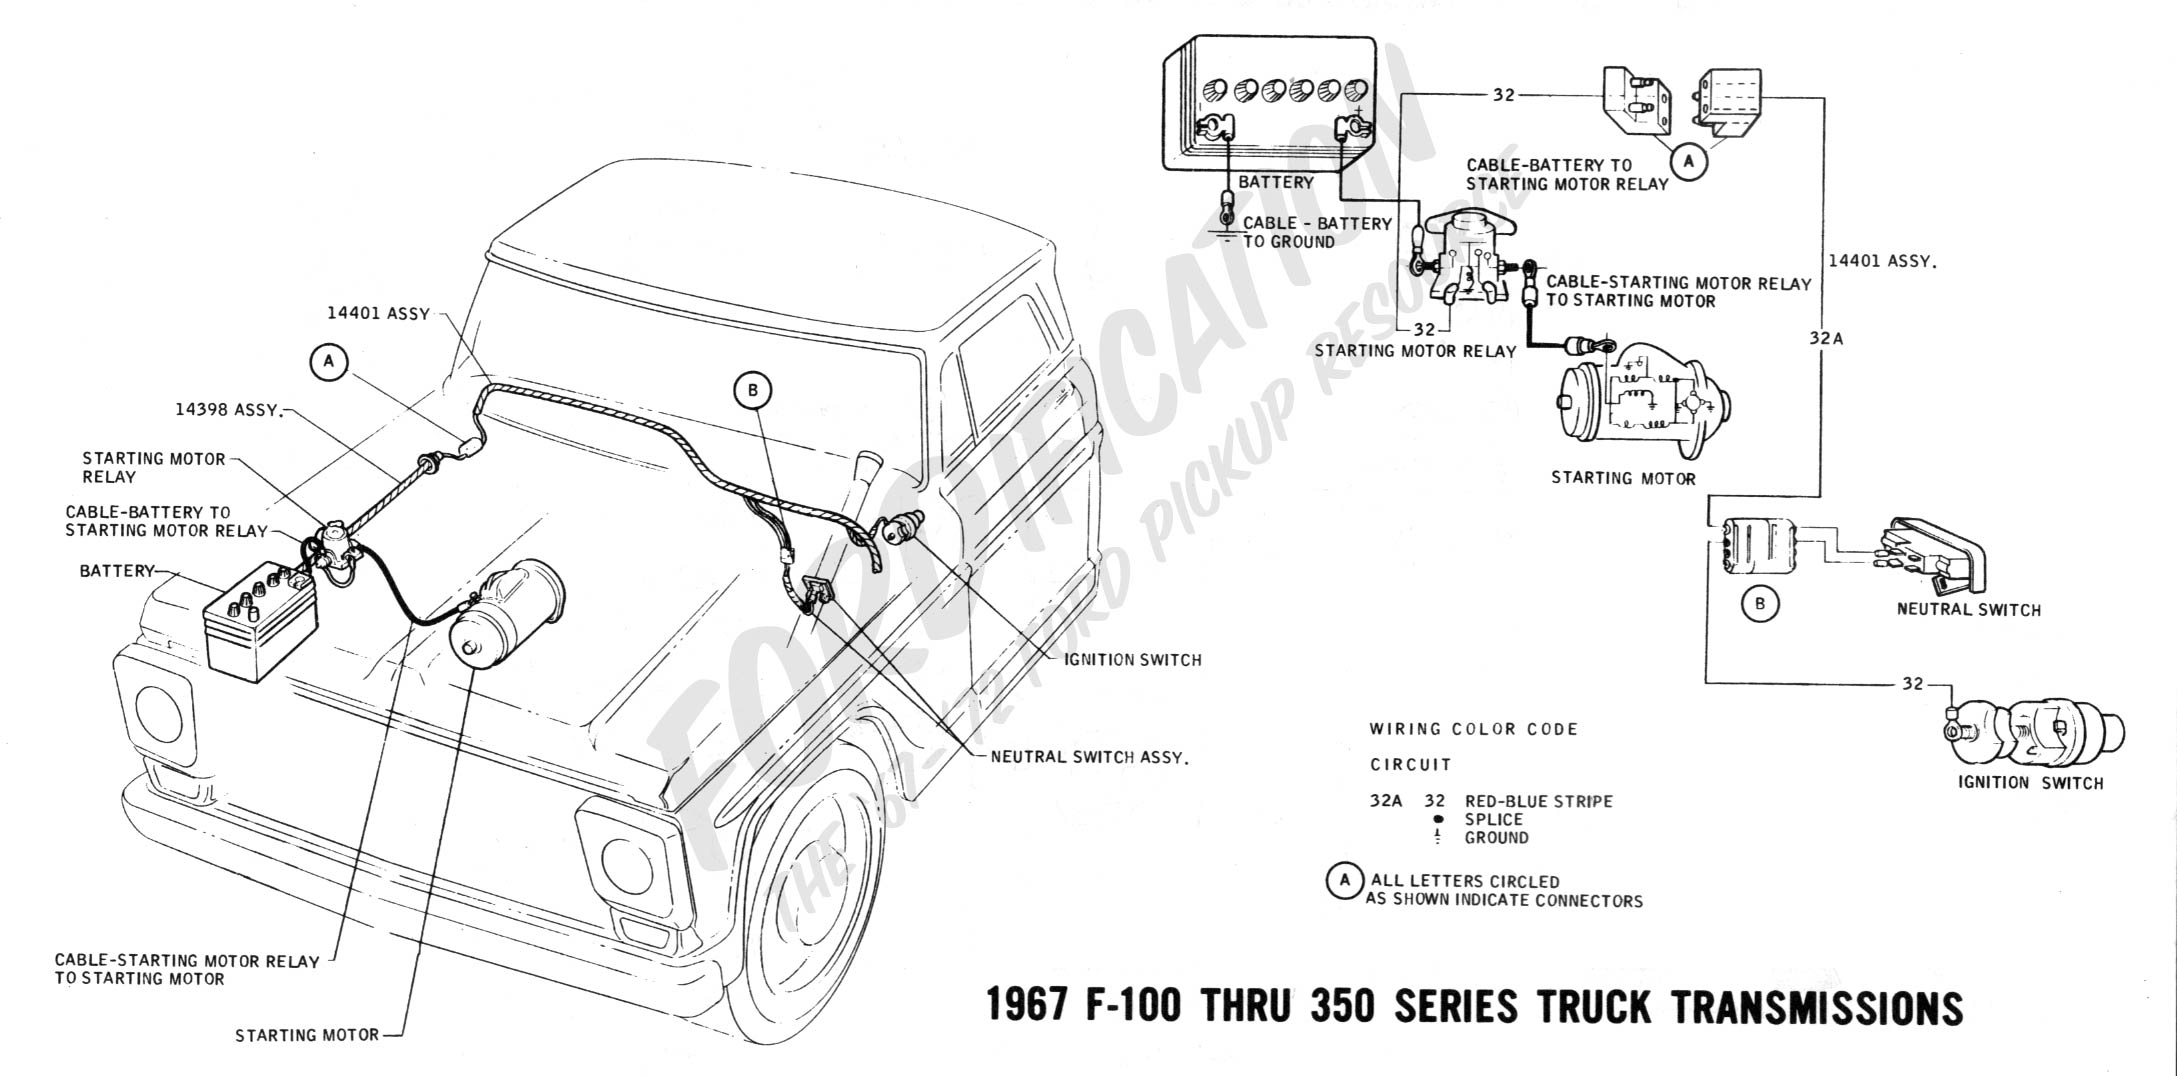 1973 Ford Maverick Wiring Diagram 1974 F250 Simple Guide About Truck Technical Drawings And Schematics Section H Ignition